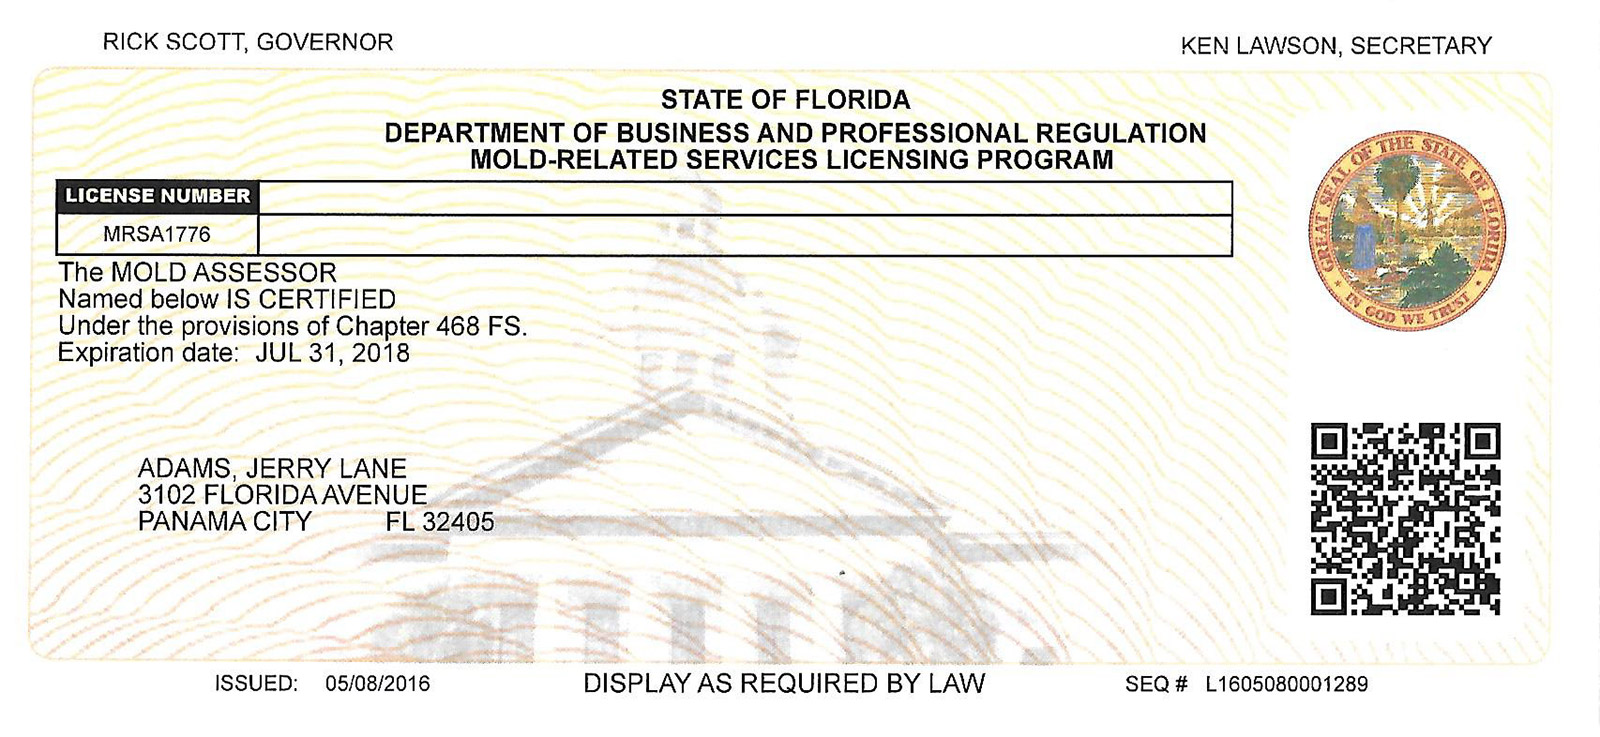 license-number-department-of-business-2017